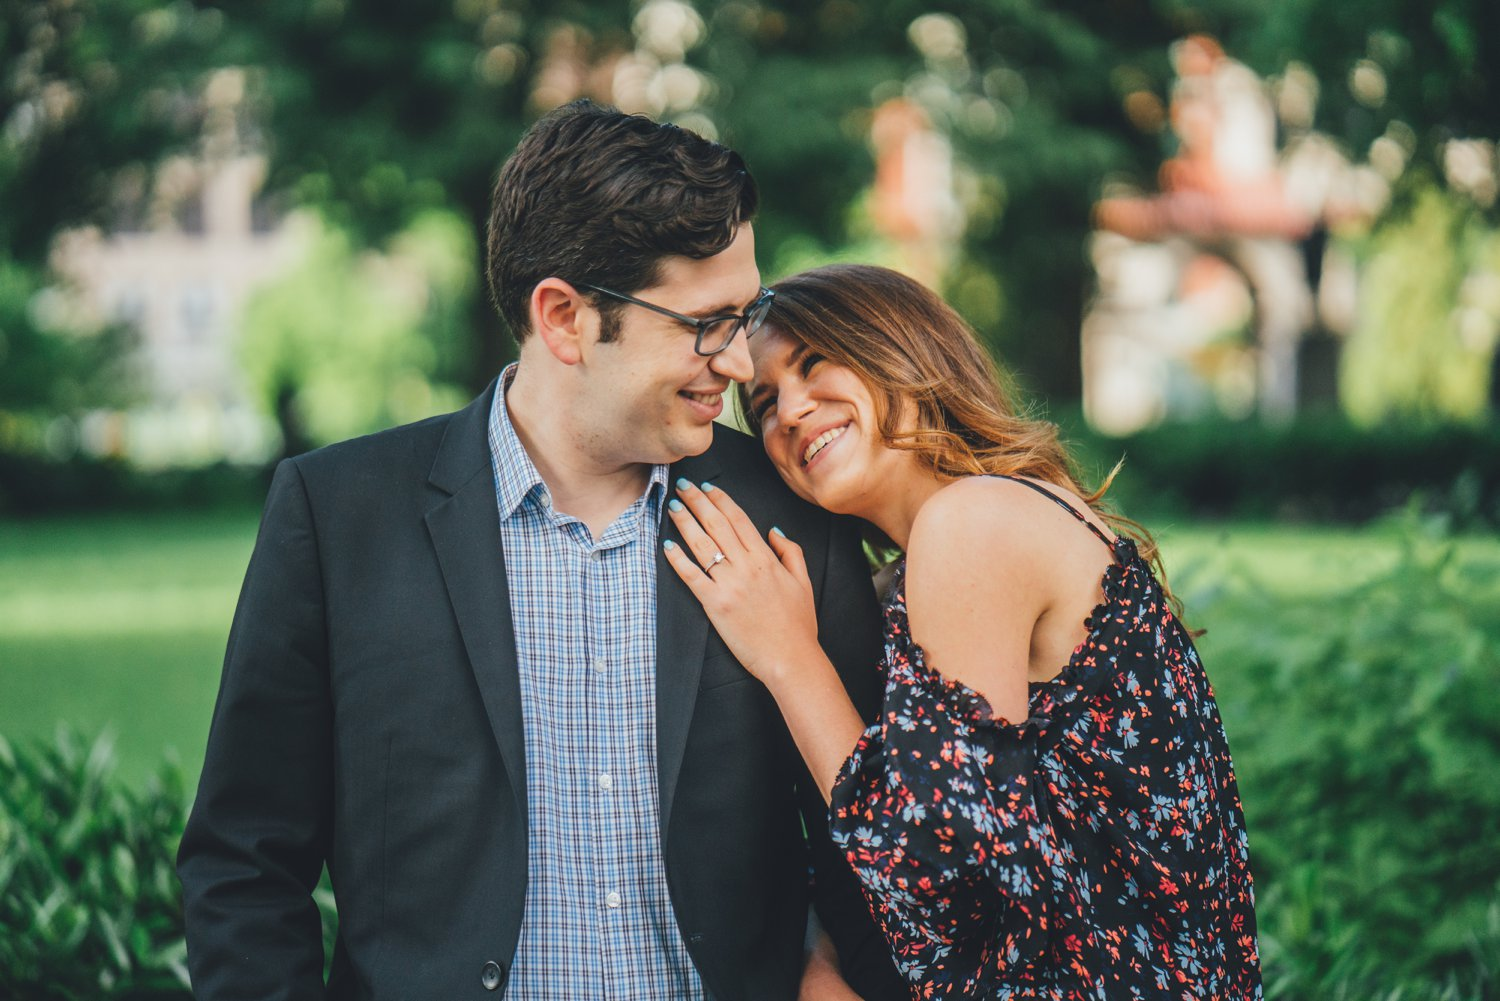 72NYC-NJ-ENGAGEMENT-PHOTOGRAPHY-BY-INTOTHESTORY-MOO-JAE.JPG